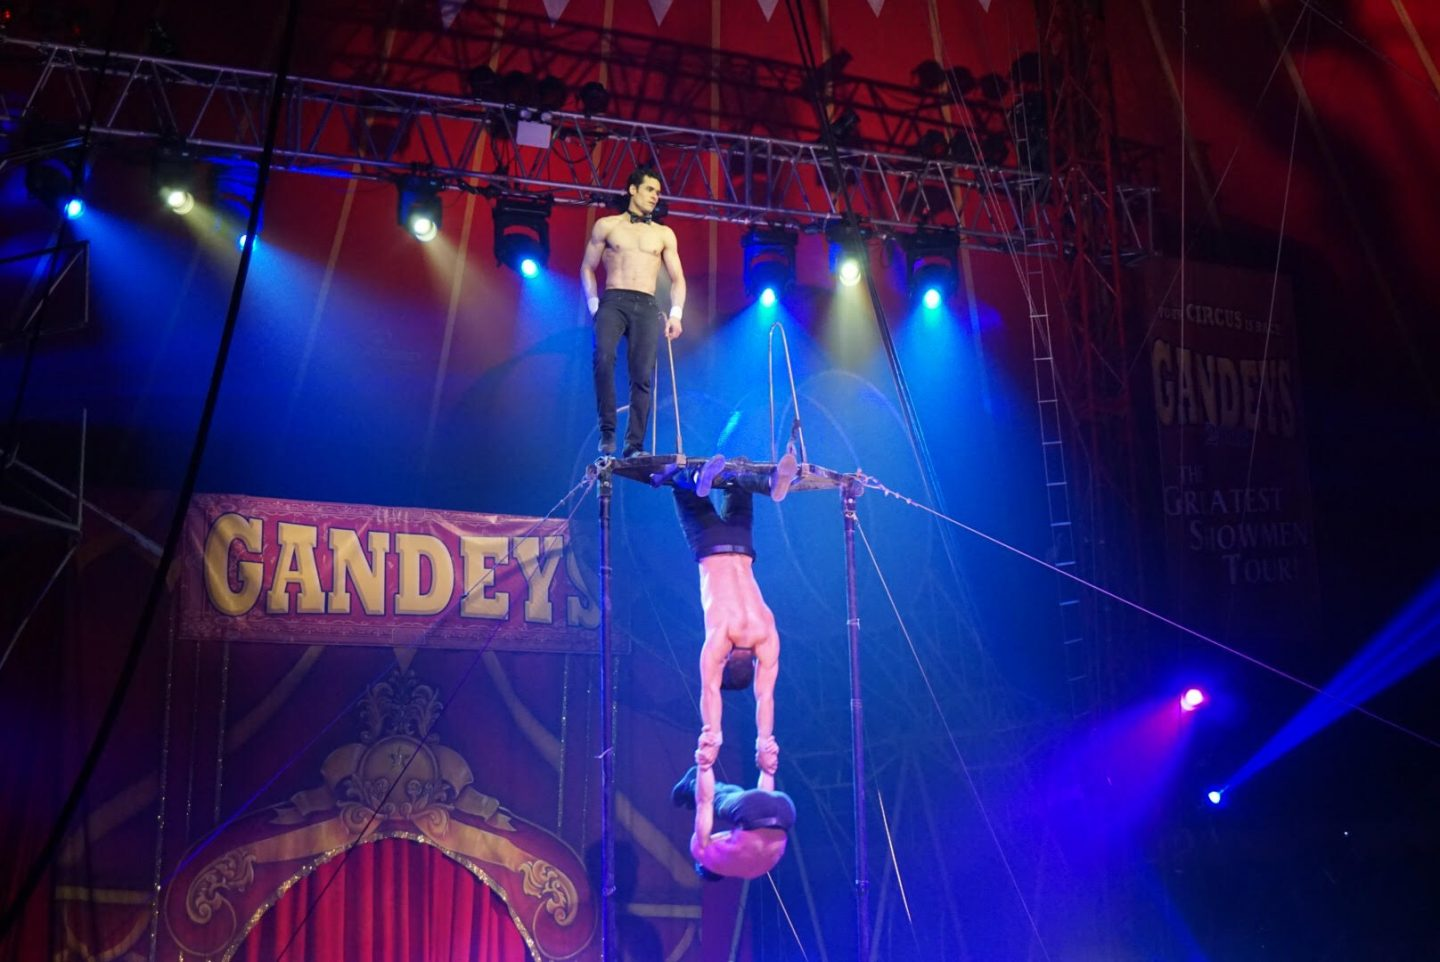 The Greatest Showman – Gandeys Circus review UK Tour